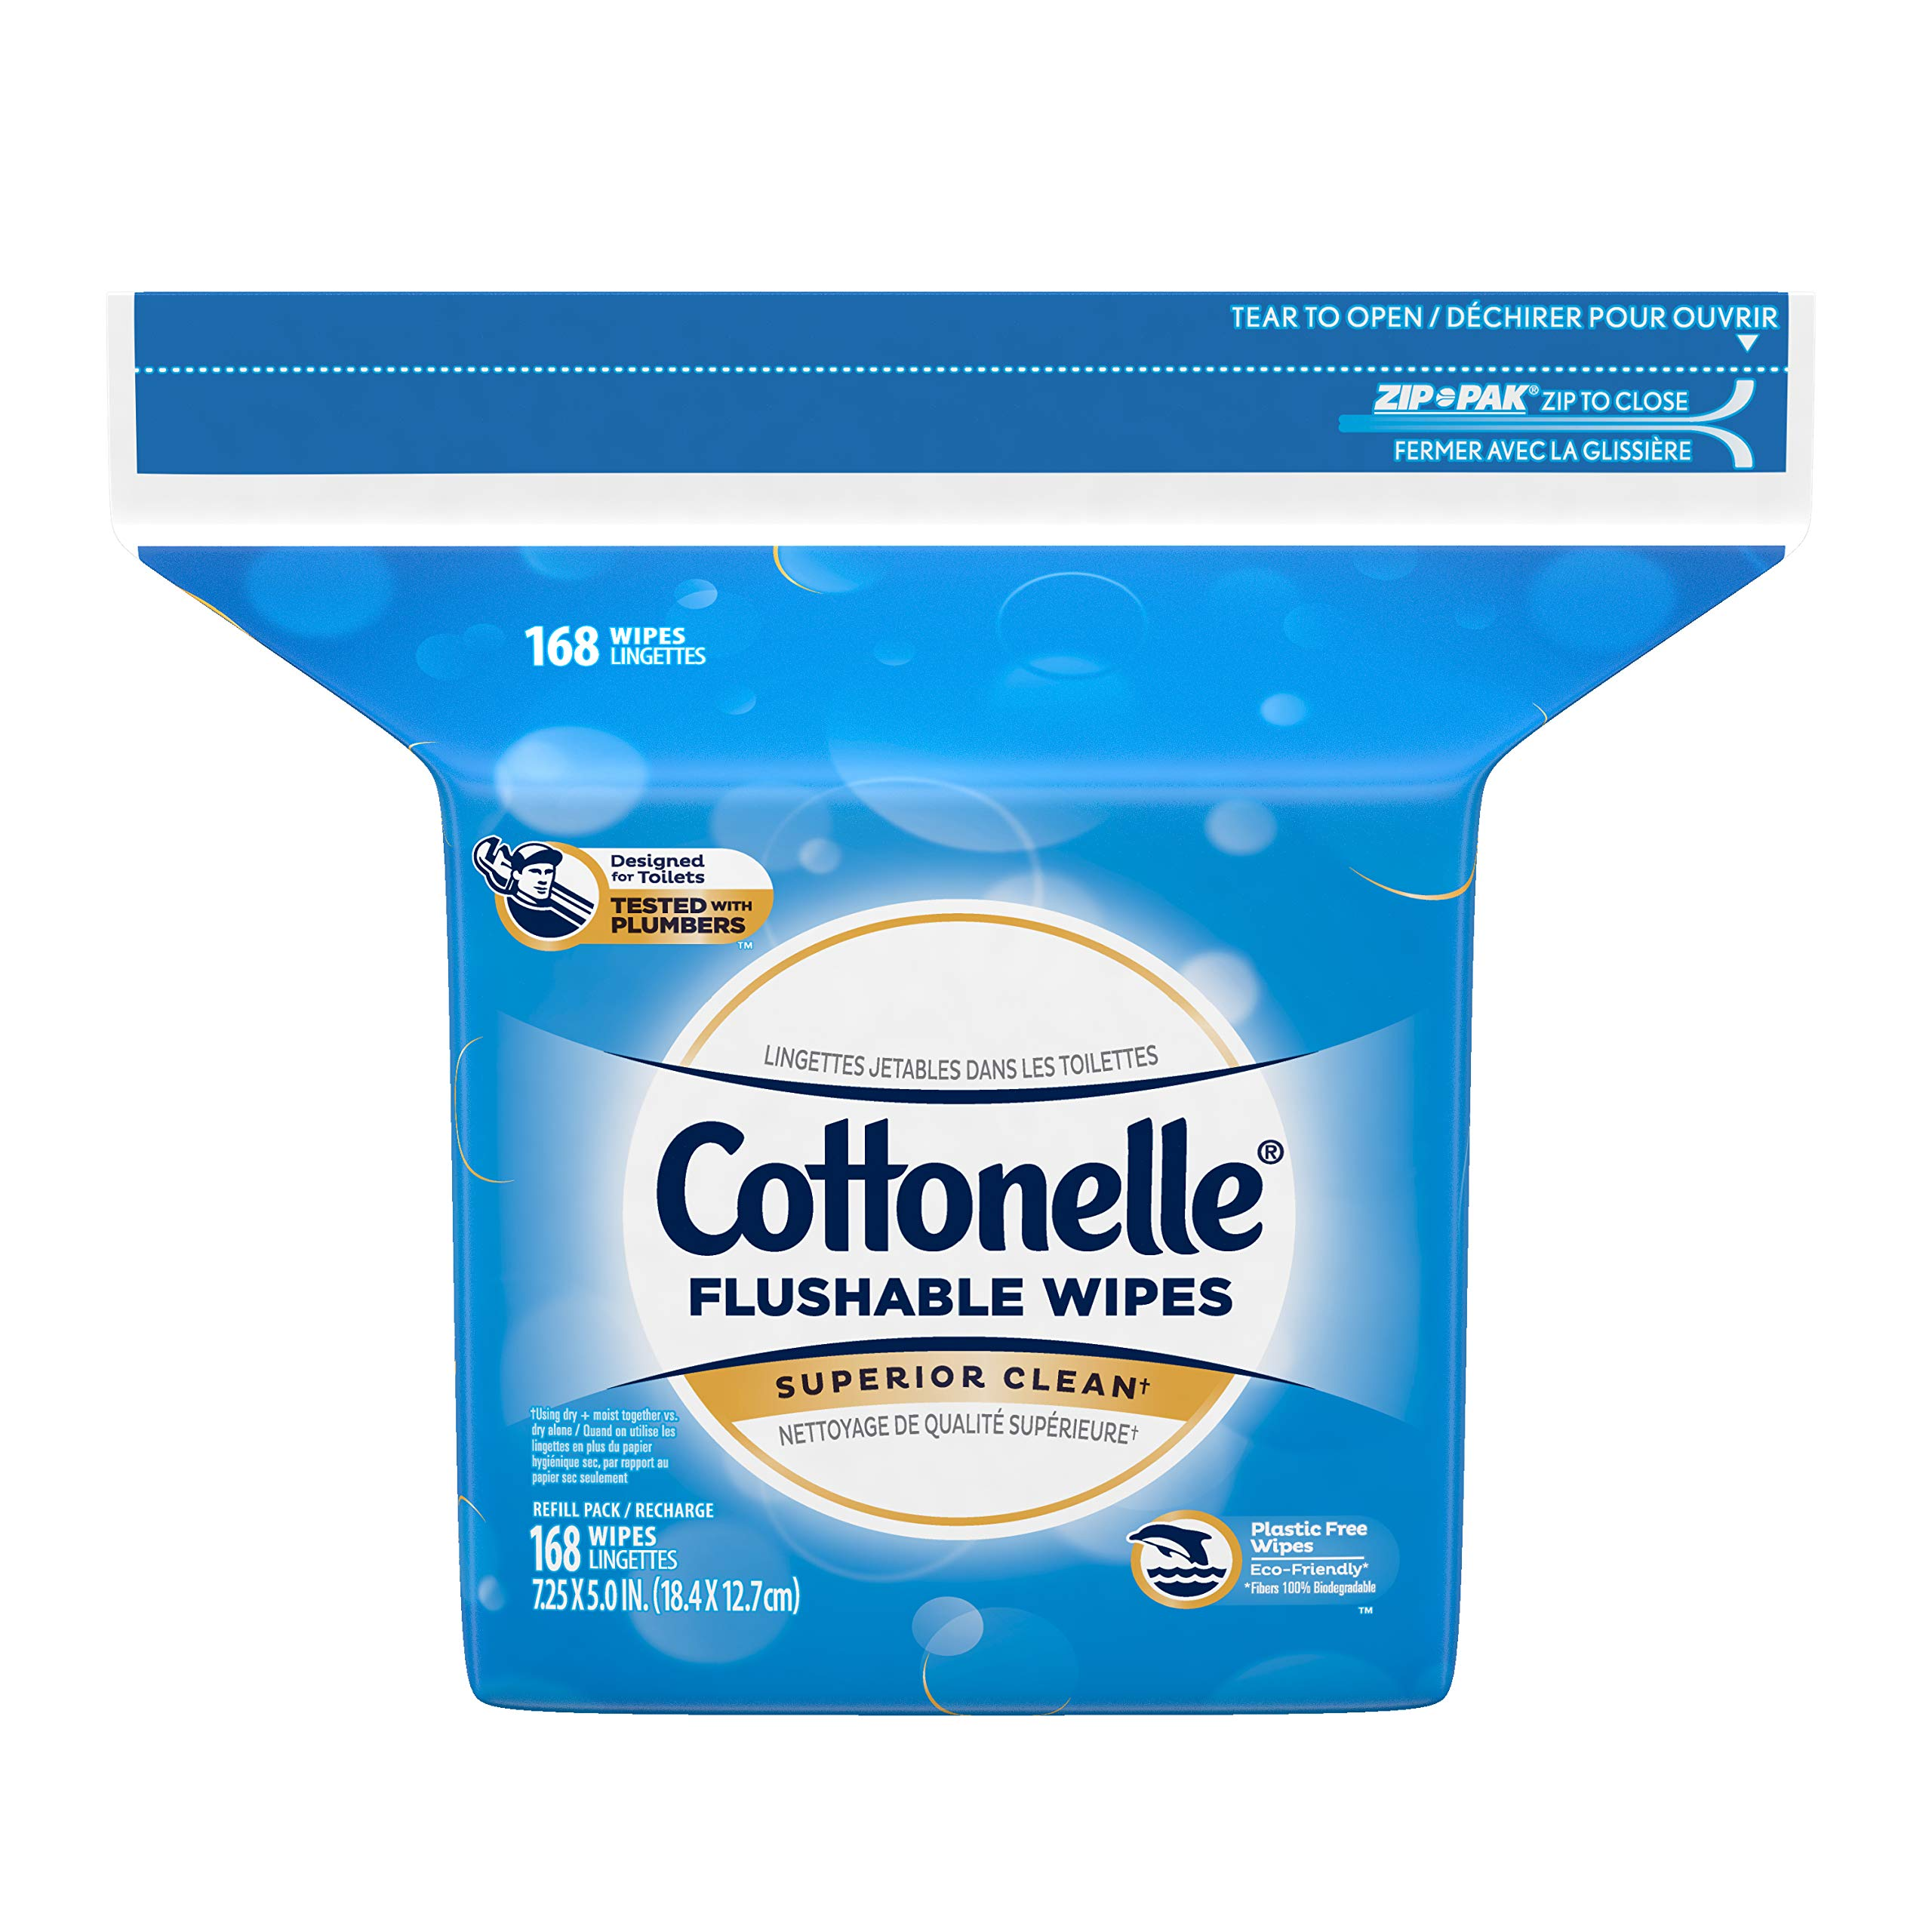 Cottonelle Flushable Wet Wipes, 168 Wipes per Pack, Pack of 8 by Cottonelle